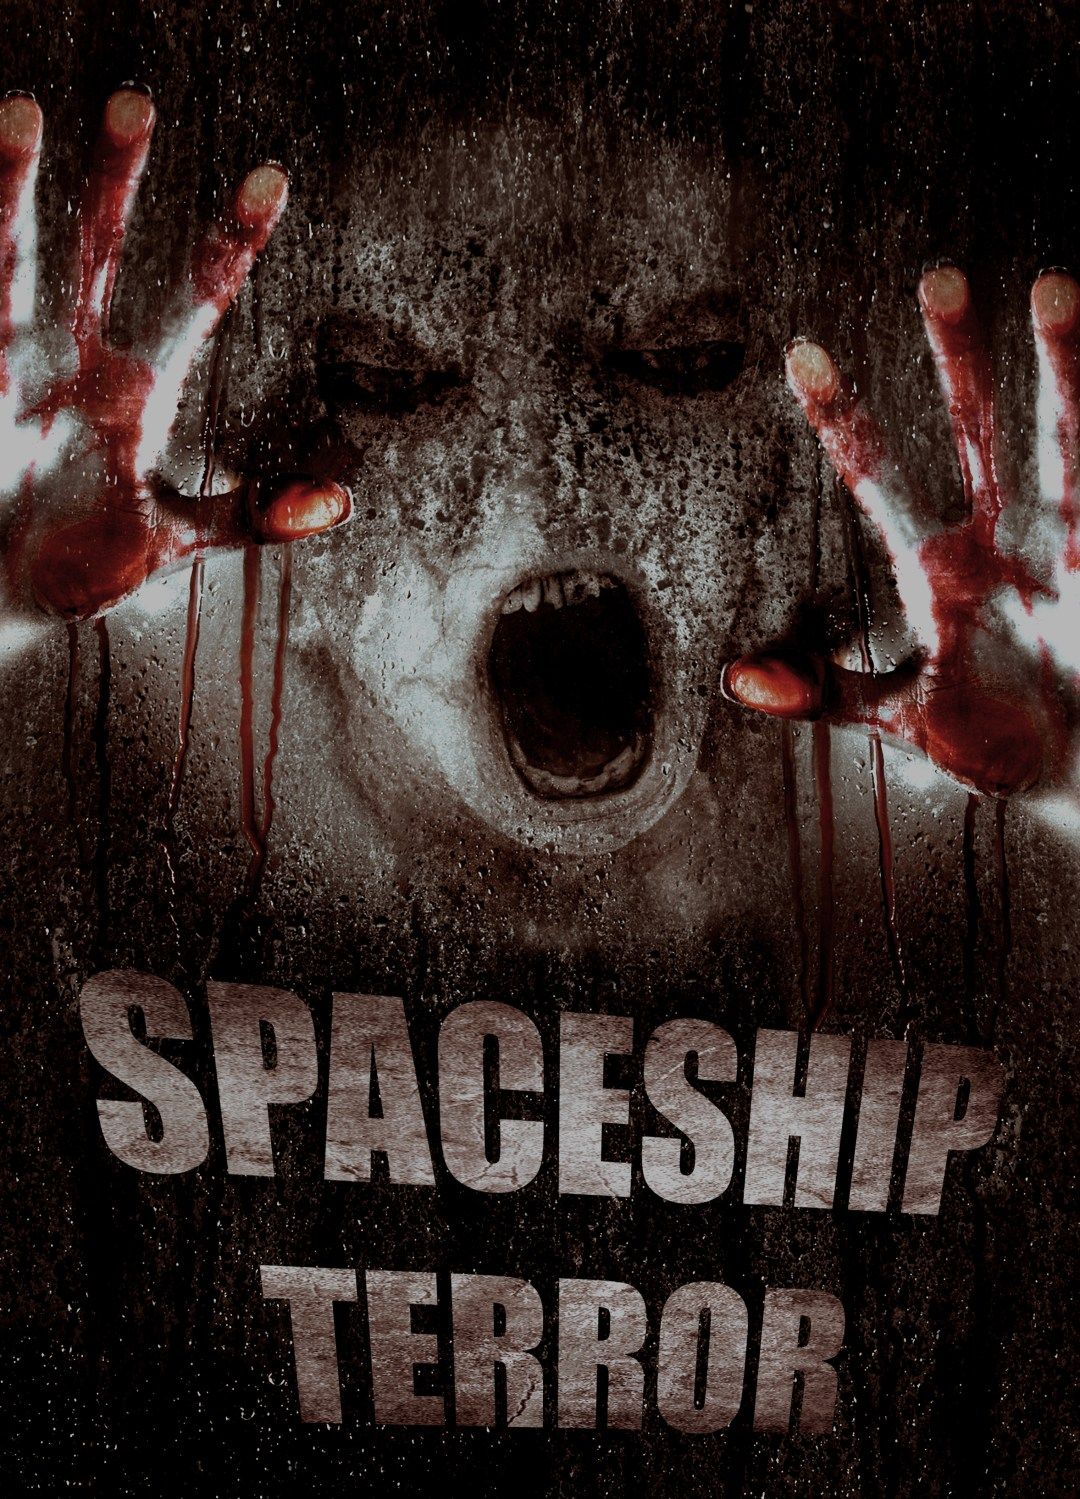 SGL Entertainment Goes Beyond Horror with 'Spaceship Terror'